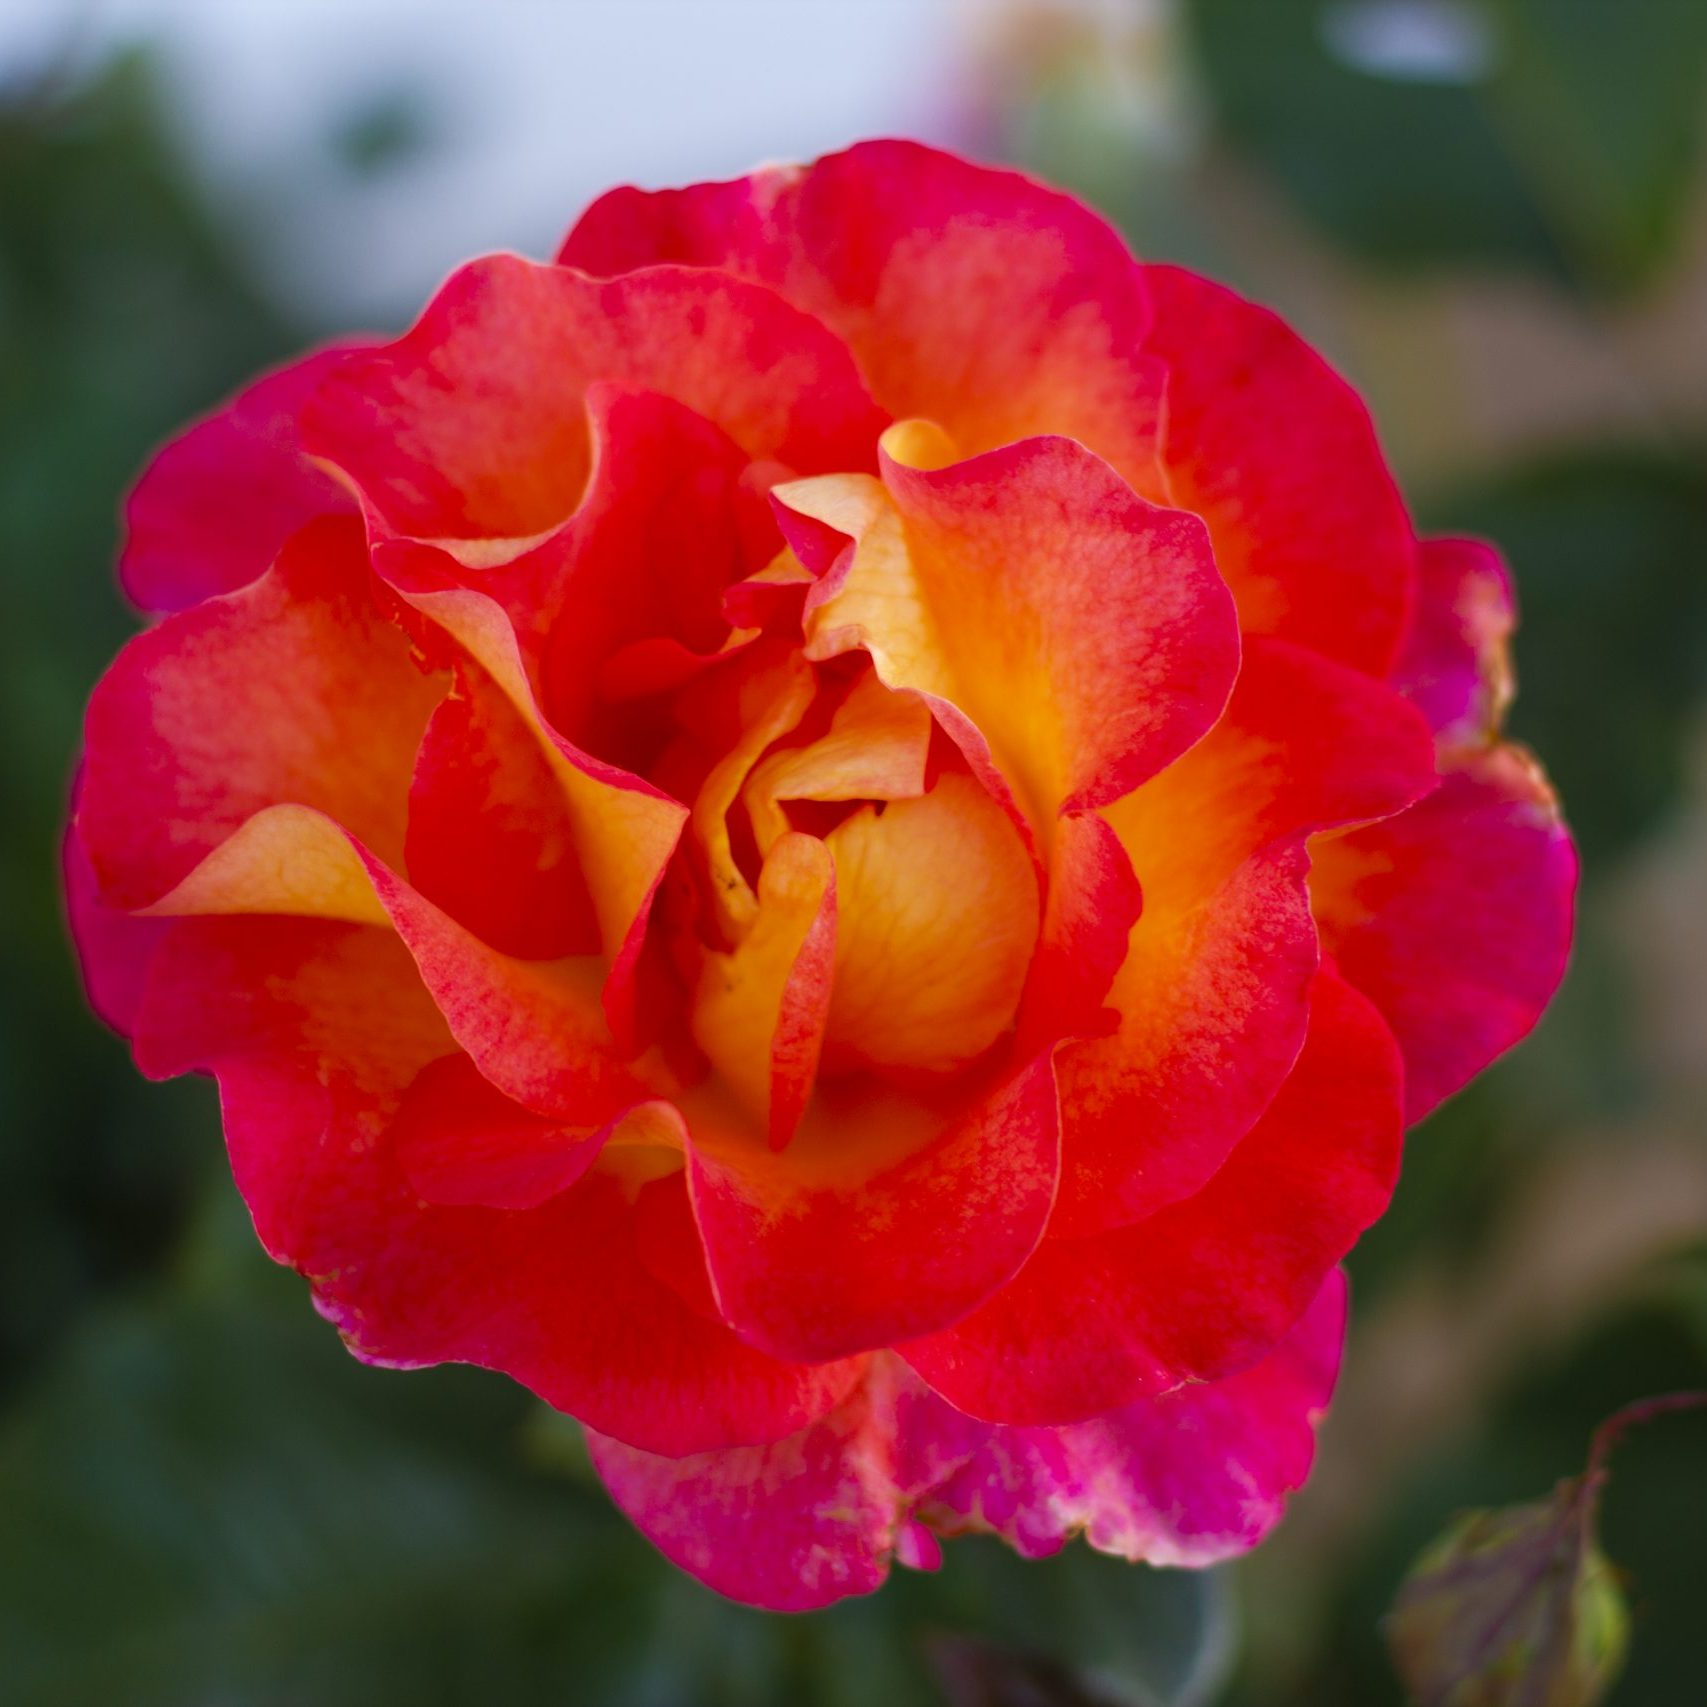 Orange and pink shade rose